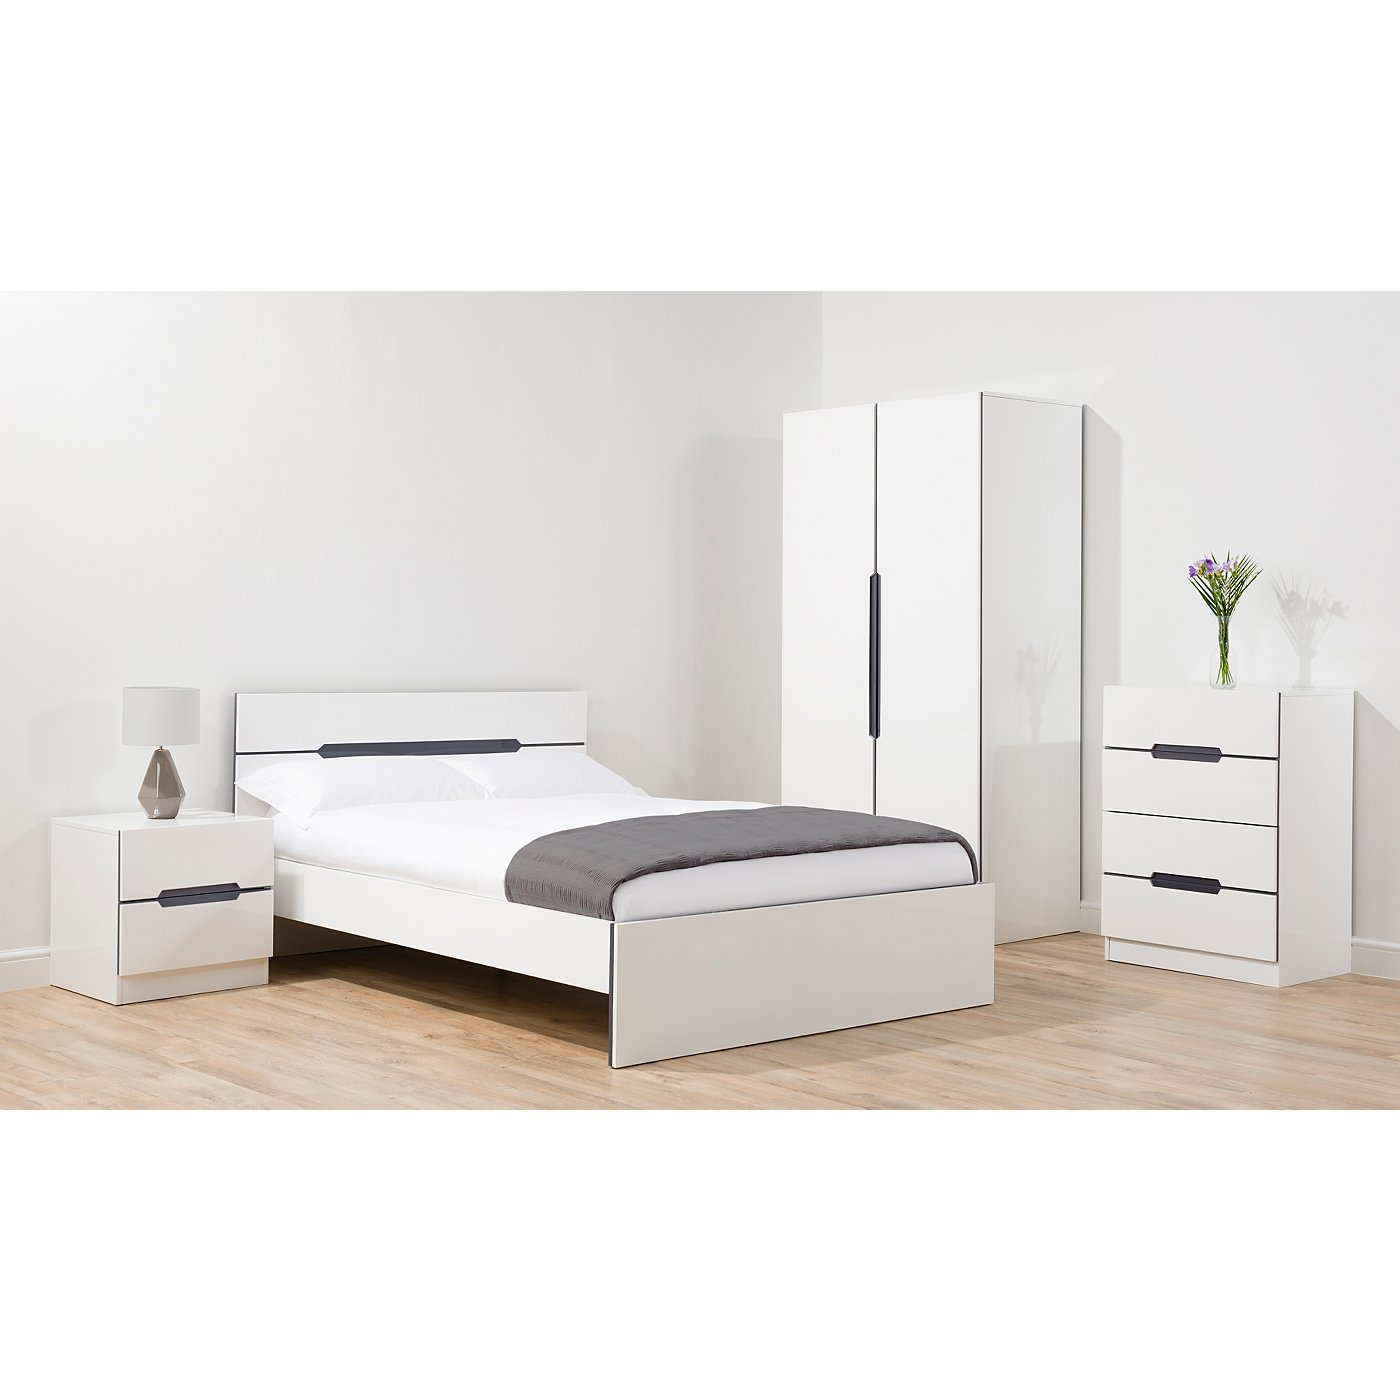 Bedroom Furniture Asda